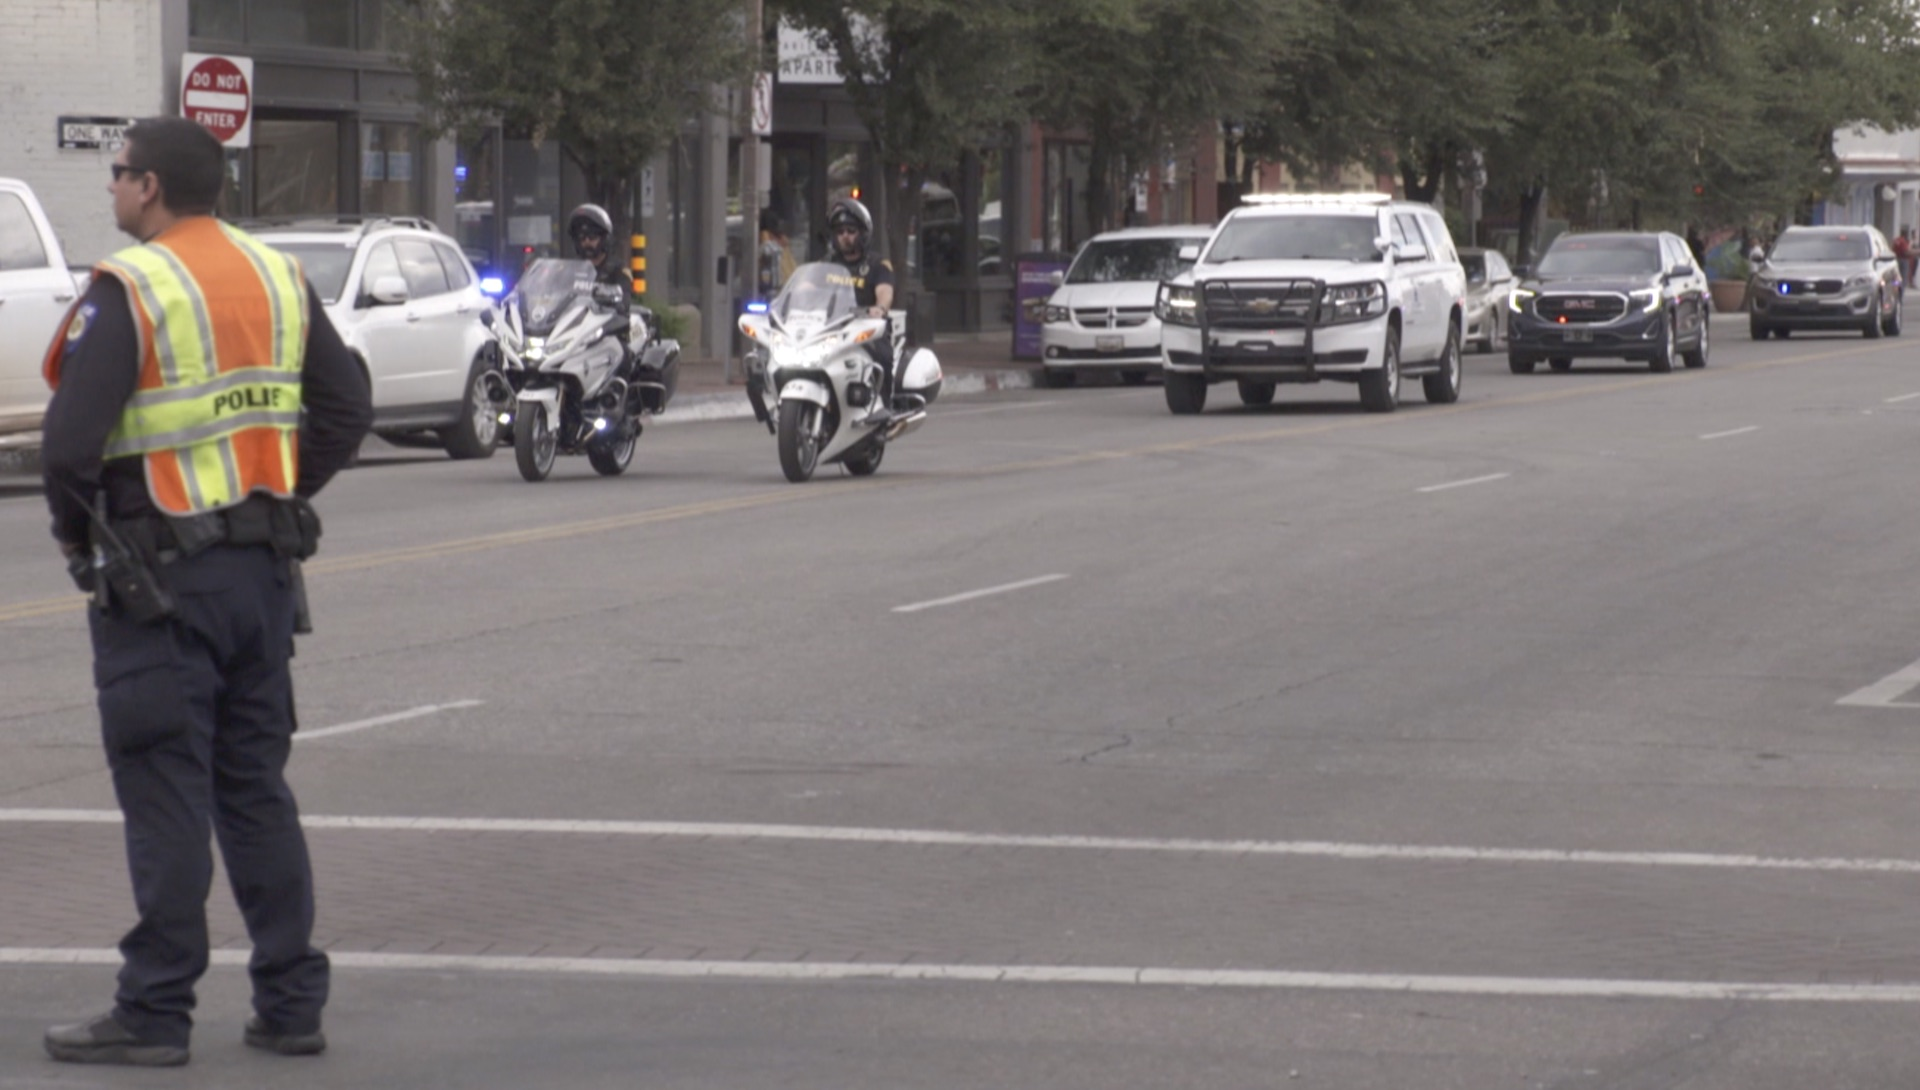 Police escort a vehicle carrying the body of Drug Enforcement Administration Group Supervisor Michael G. Garbo on Tuesday, October 5, 2021 after he was killed during a shootout at the Amtrak train station in downtown Tucson.